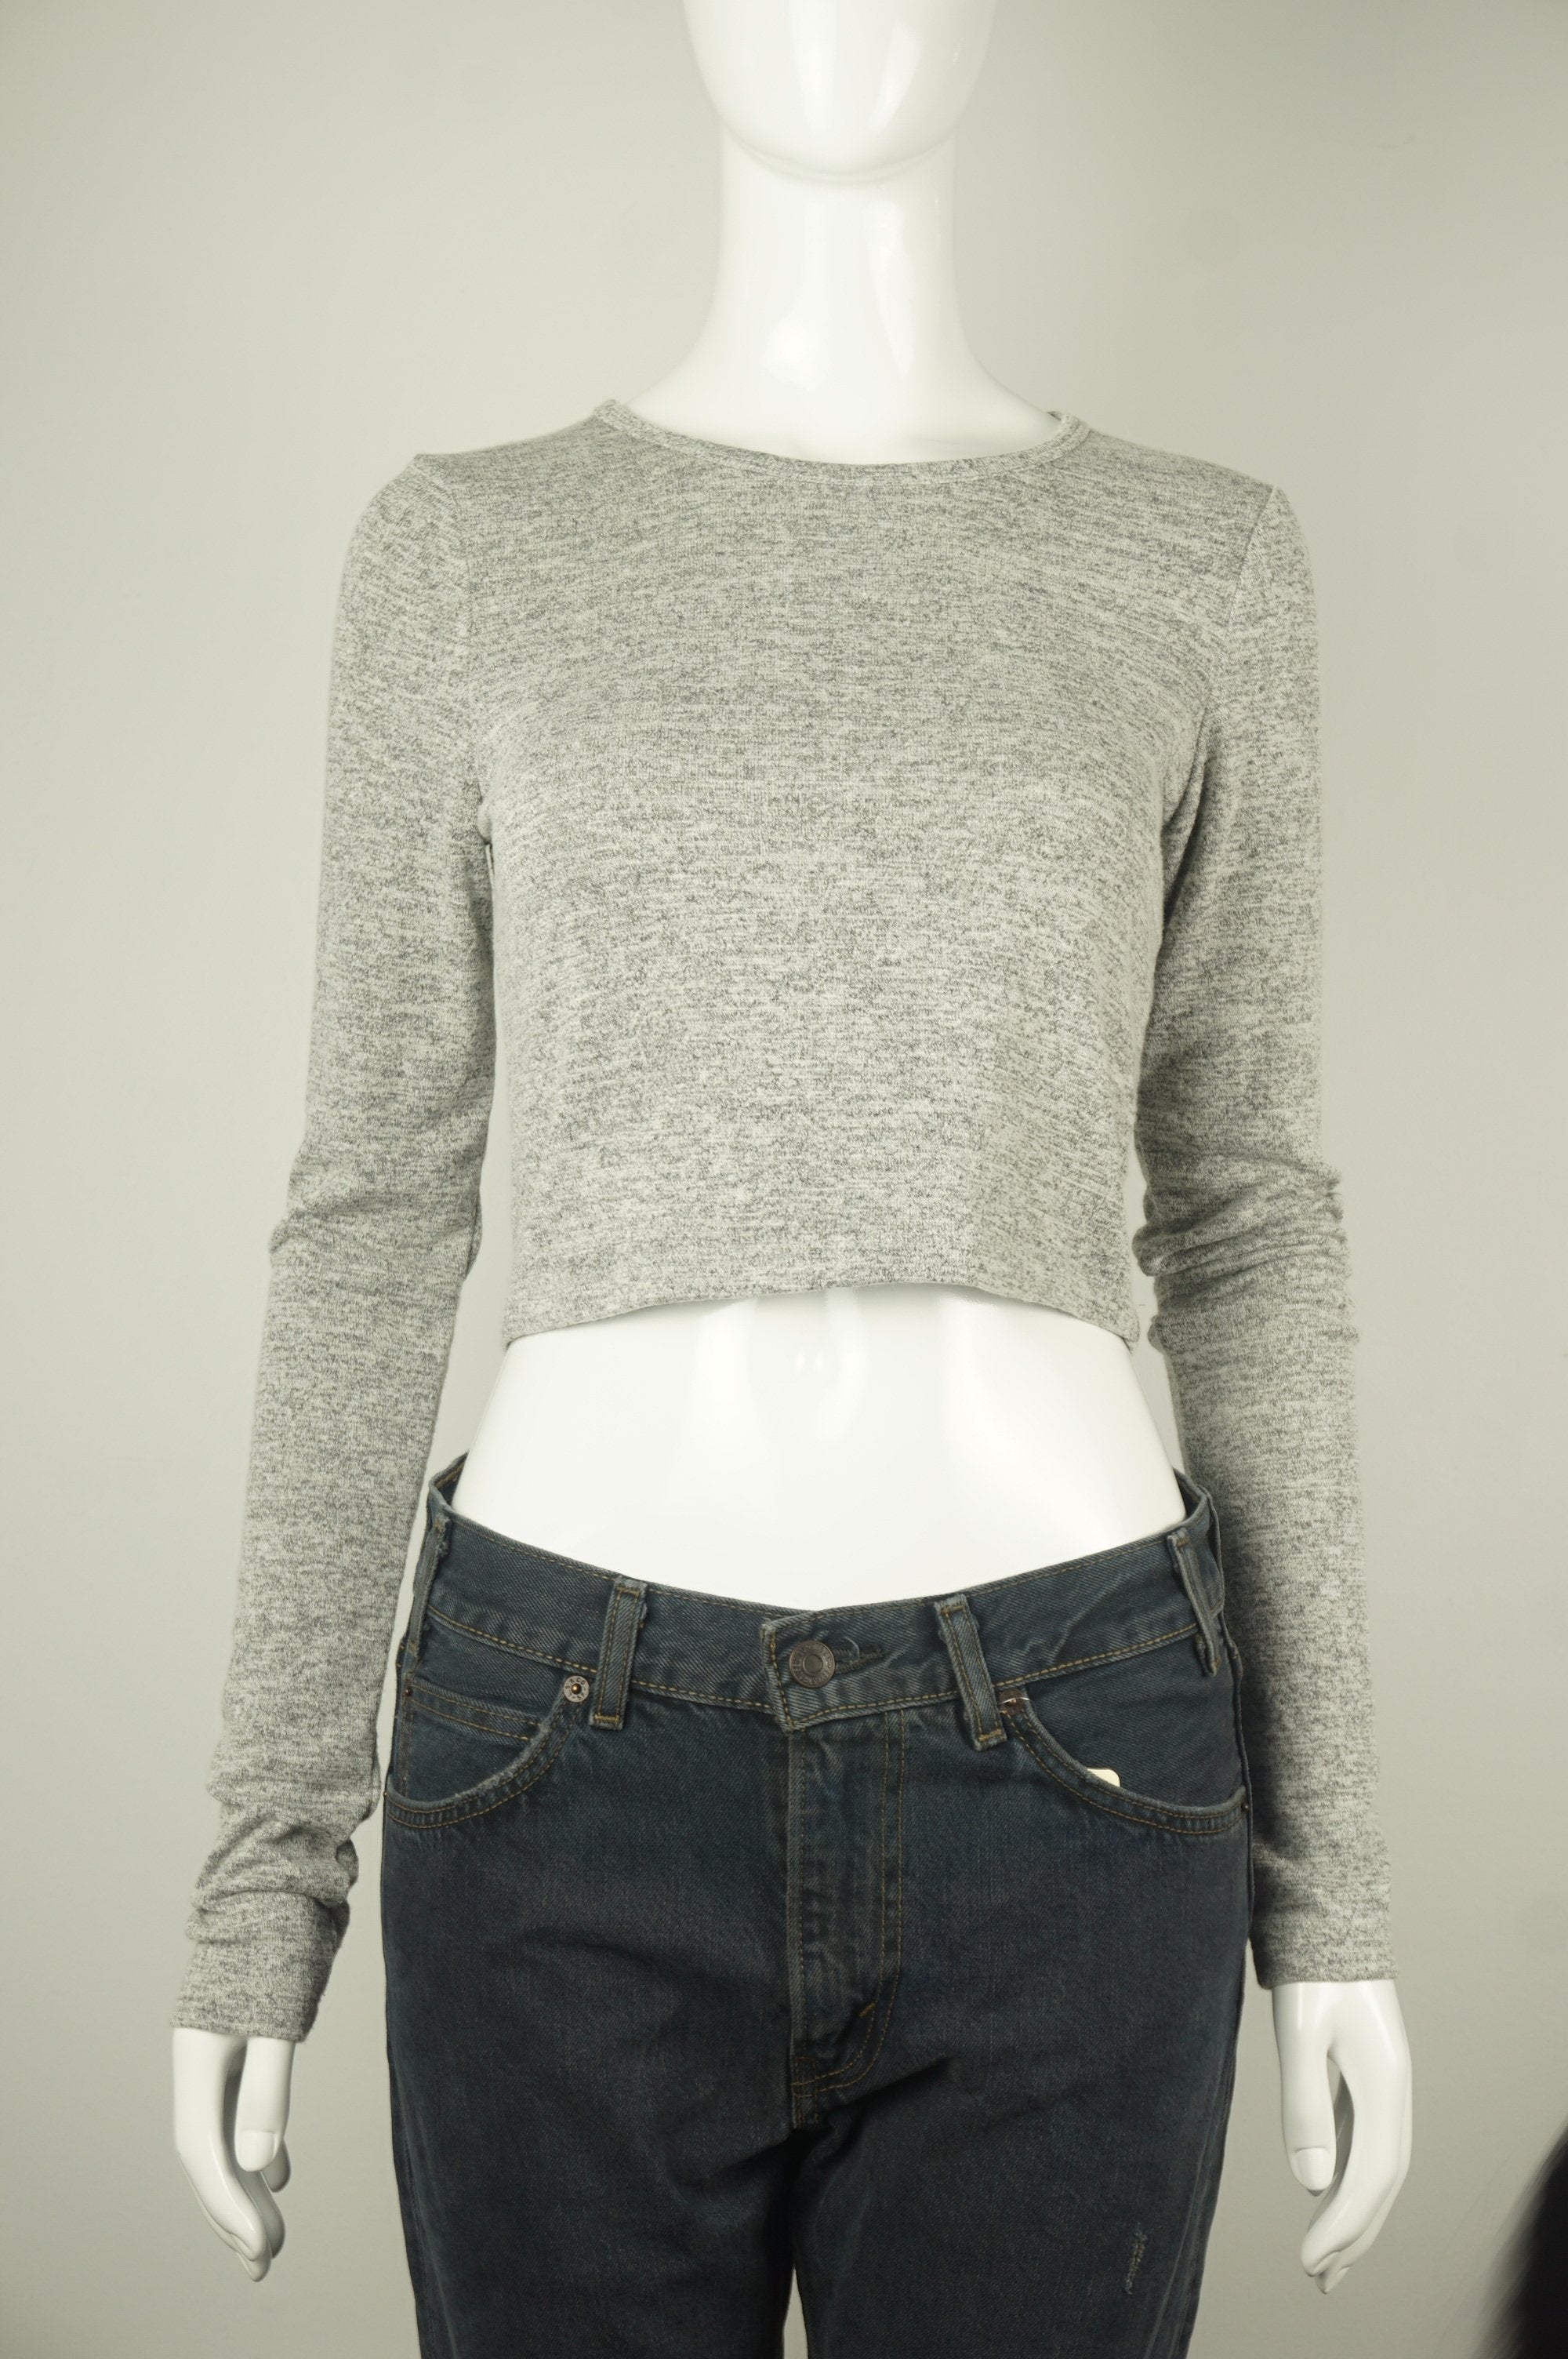 Wilfred Free Long sleeve crop top, The cropped fit is easy to wear and perfect for the season — plus it looks fantastic with high-waisted bottoms. The soft, stretchy fabric feels so amazing to wear, you're not going to want to take it off! , Grey, 48% Rayon, 48% Polyester, 4% Spandex, women's Tops, women's Grey Tops, Wilfred Free women's Tops, wilfred long sleeve crop top sweater, aritzia women's soft crop top with loong sleeves